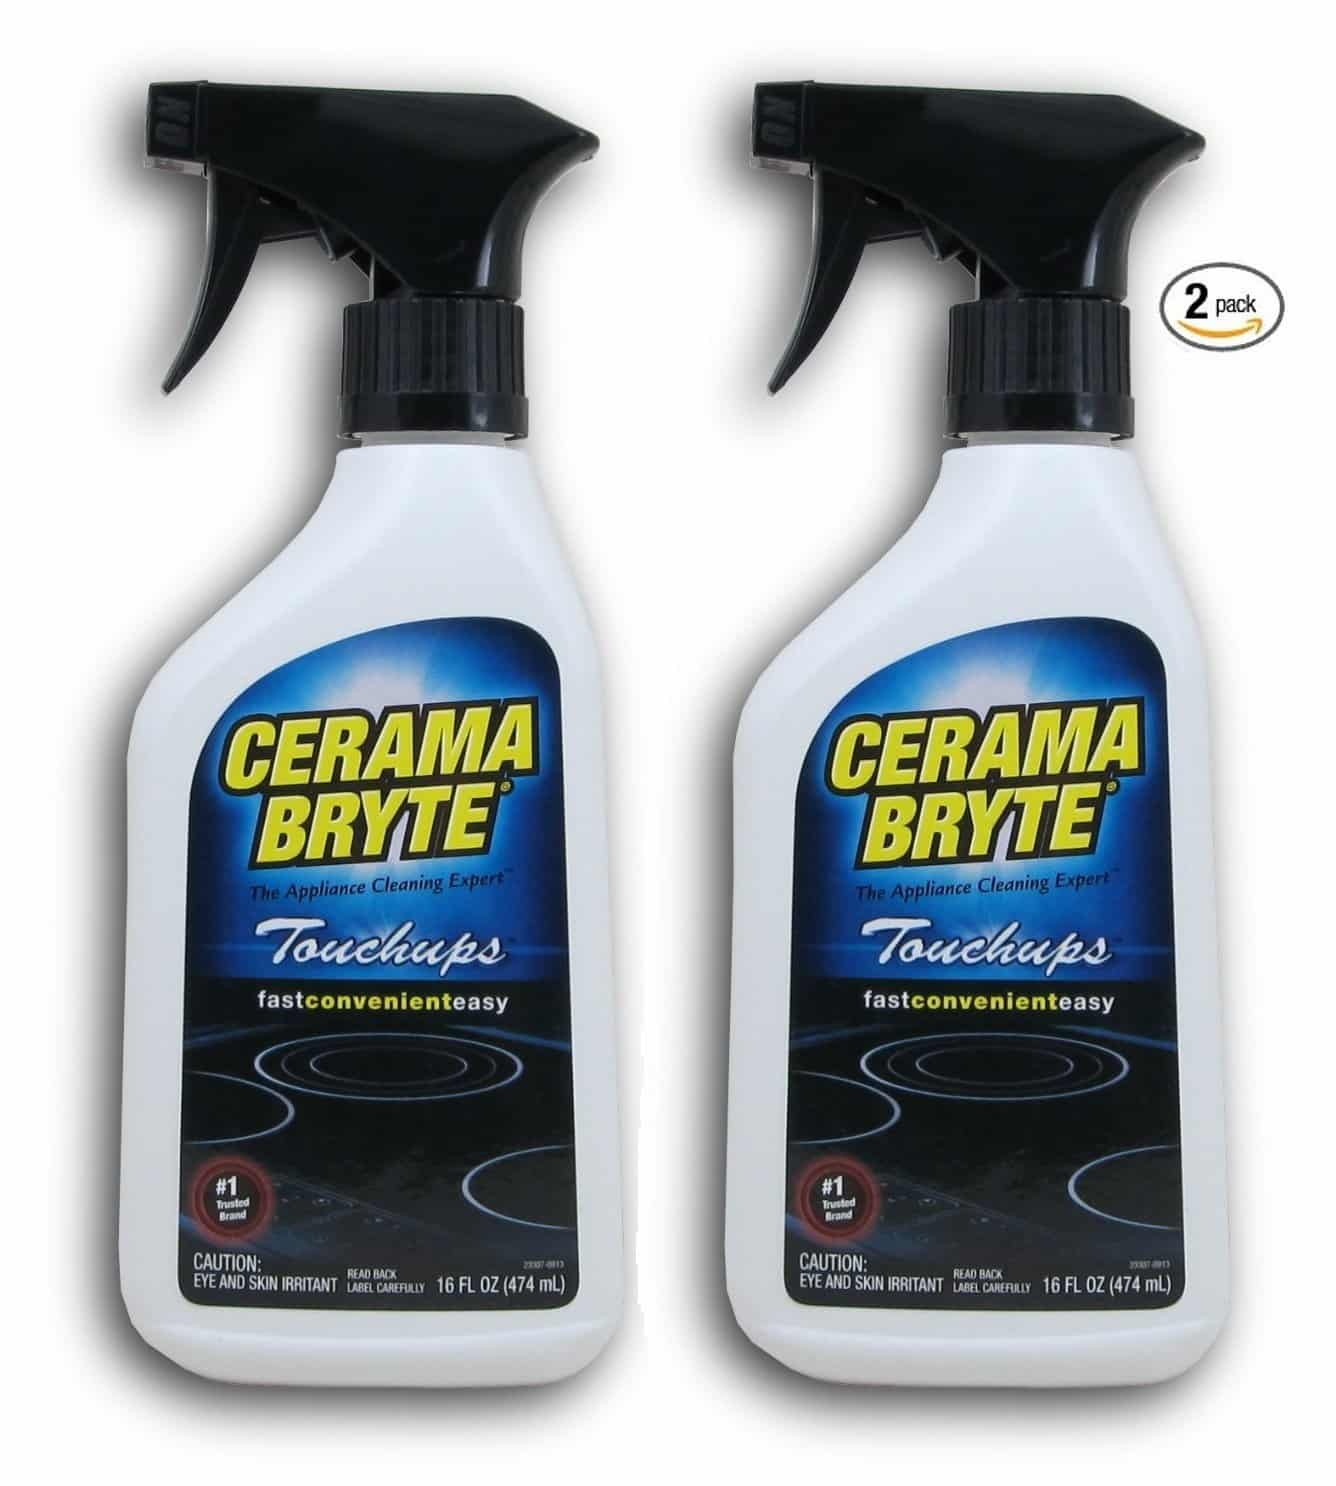 Cerama Bryte para limpar Cooktop Trigger Spray 475ml